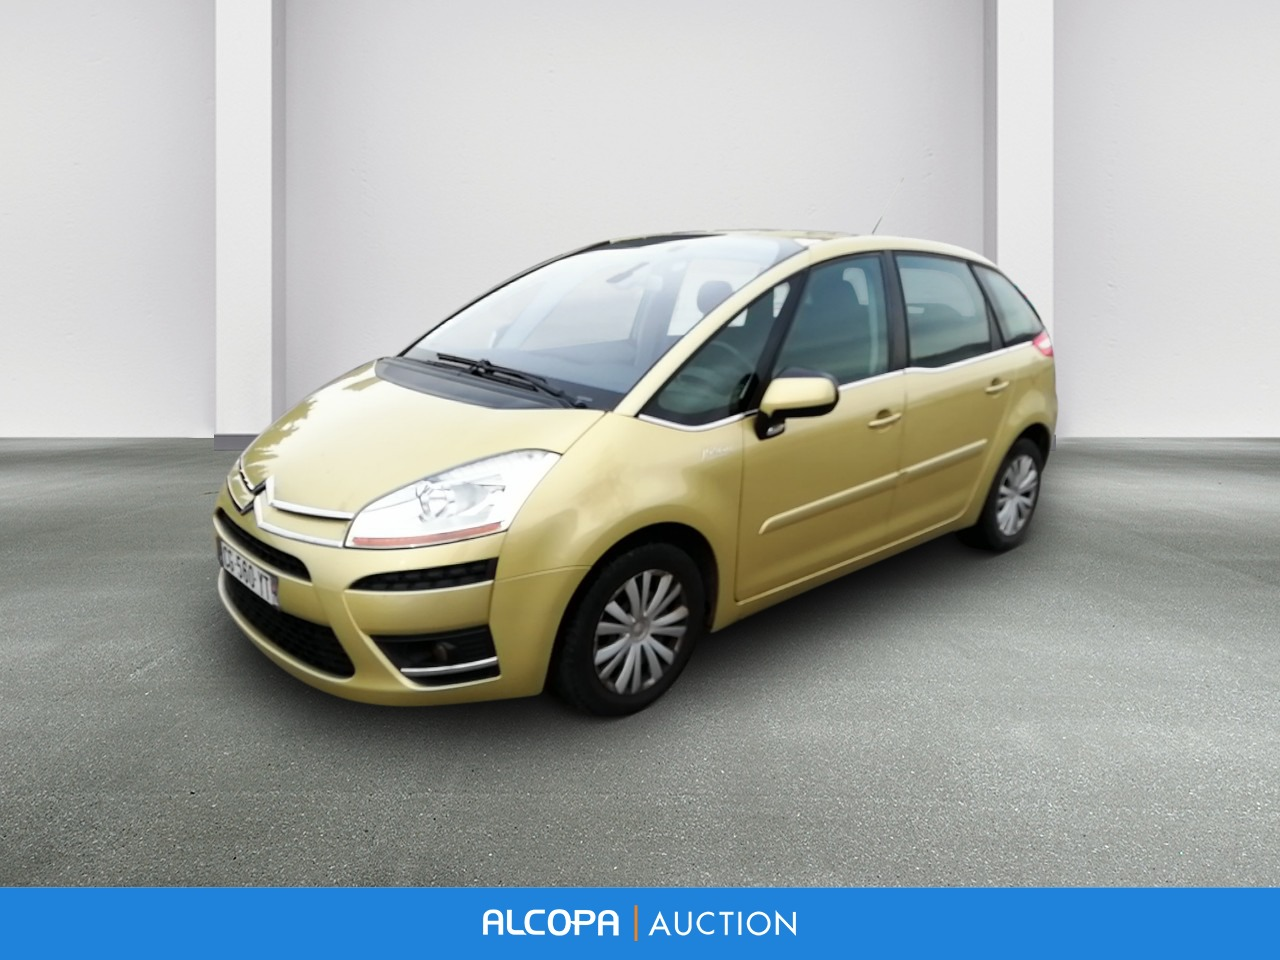 citroen c4 picasso c4 picasso leader 1 6 hdi 110 fap airdream pack ambiance bmp6 marseille